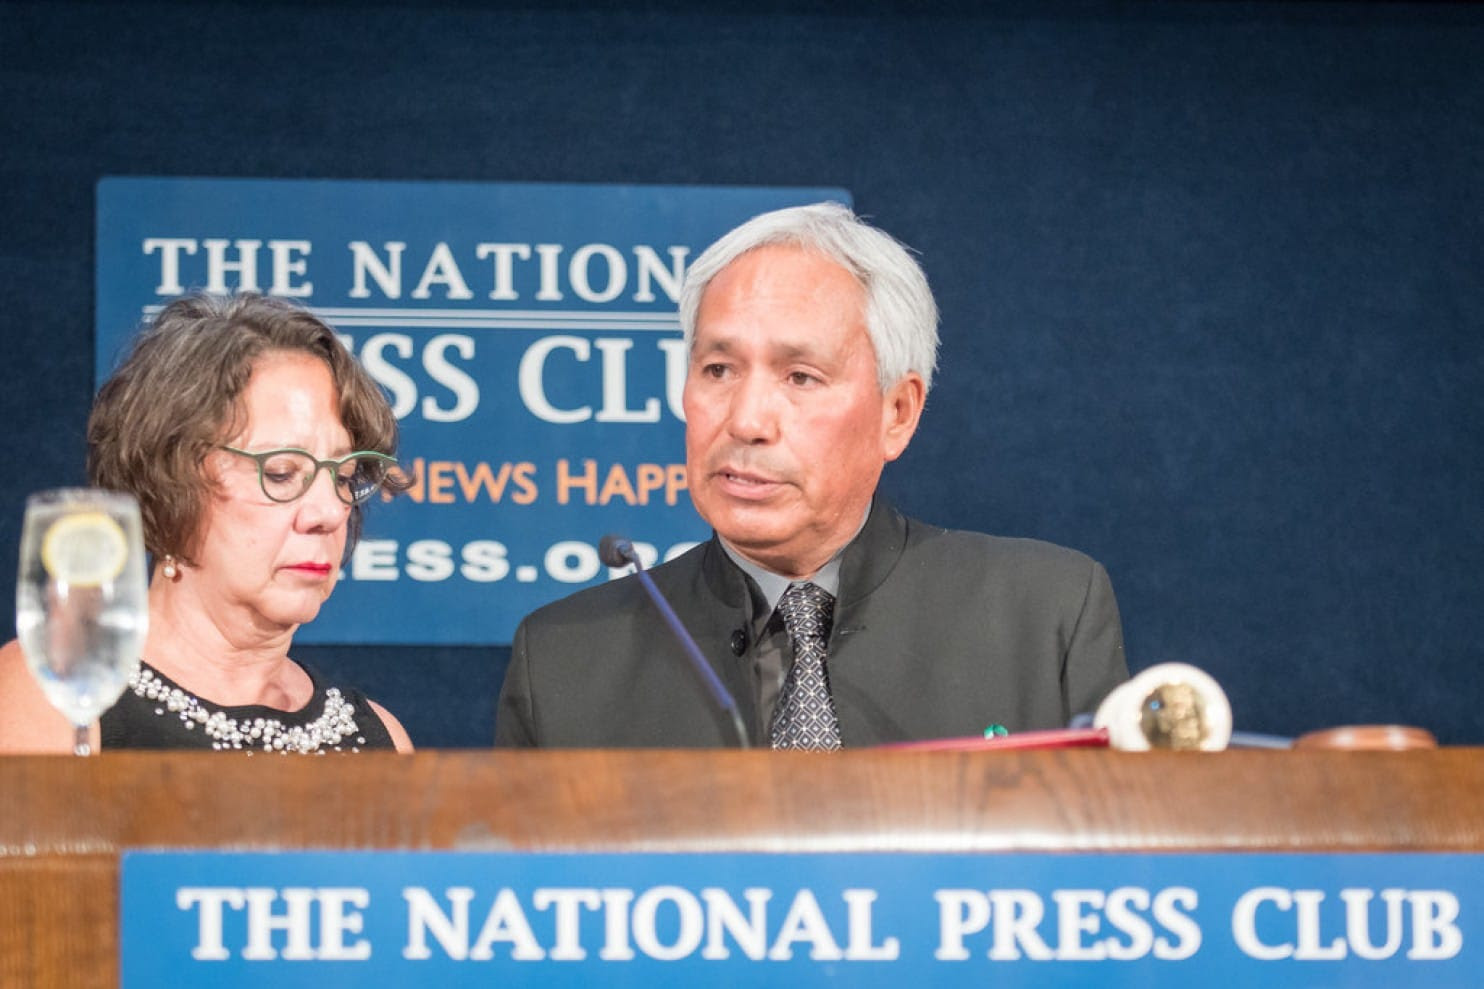 Emilio Gutierrez with Michele Salcedo of the Associated Press at the National Press Club in October. (Credit: Noel St. John/National Press Club)